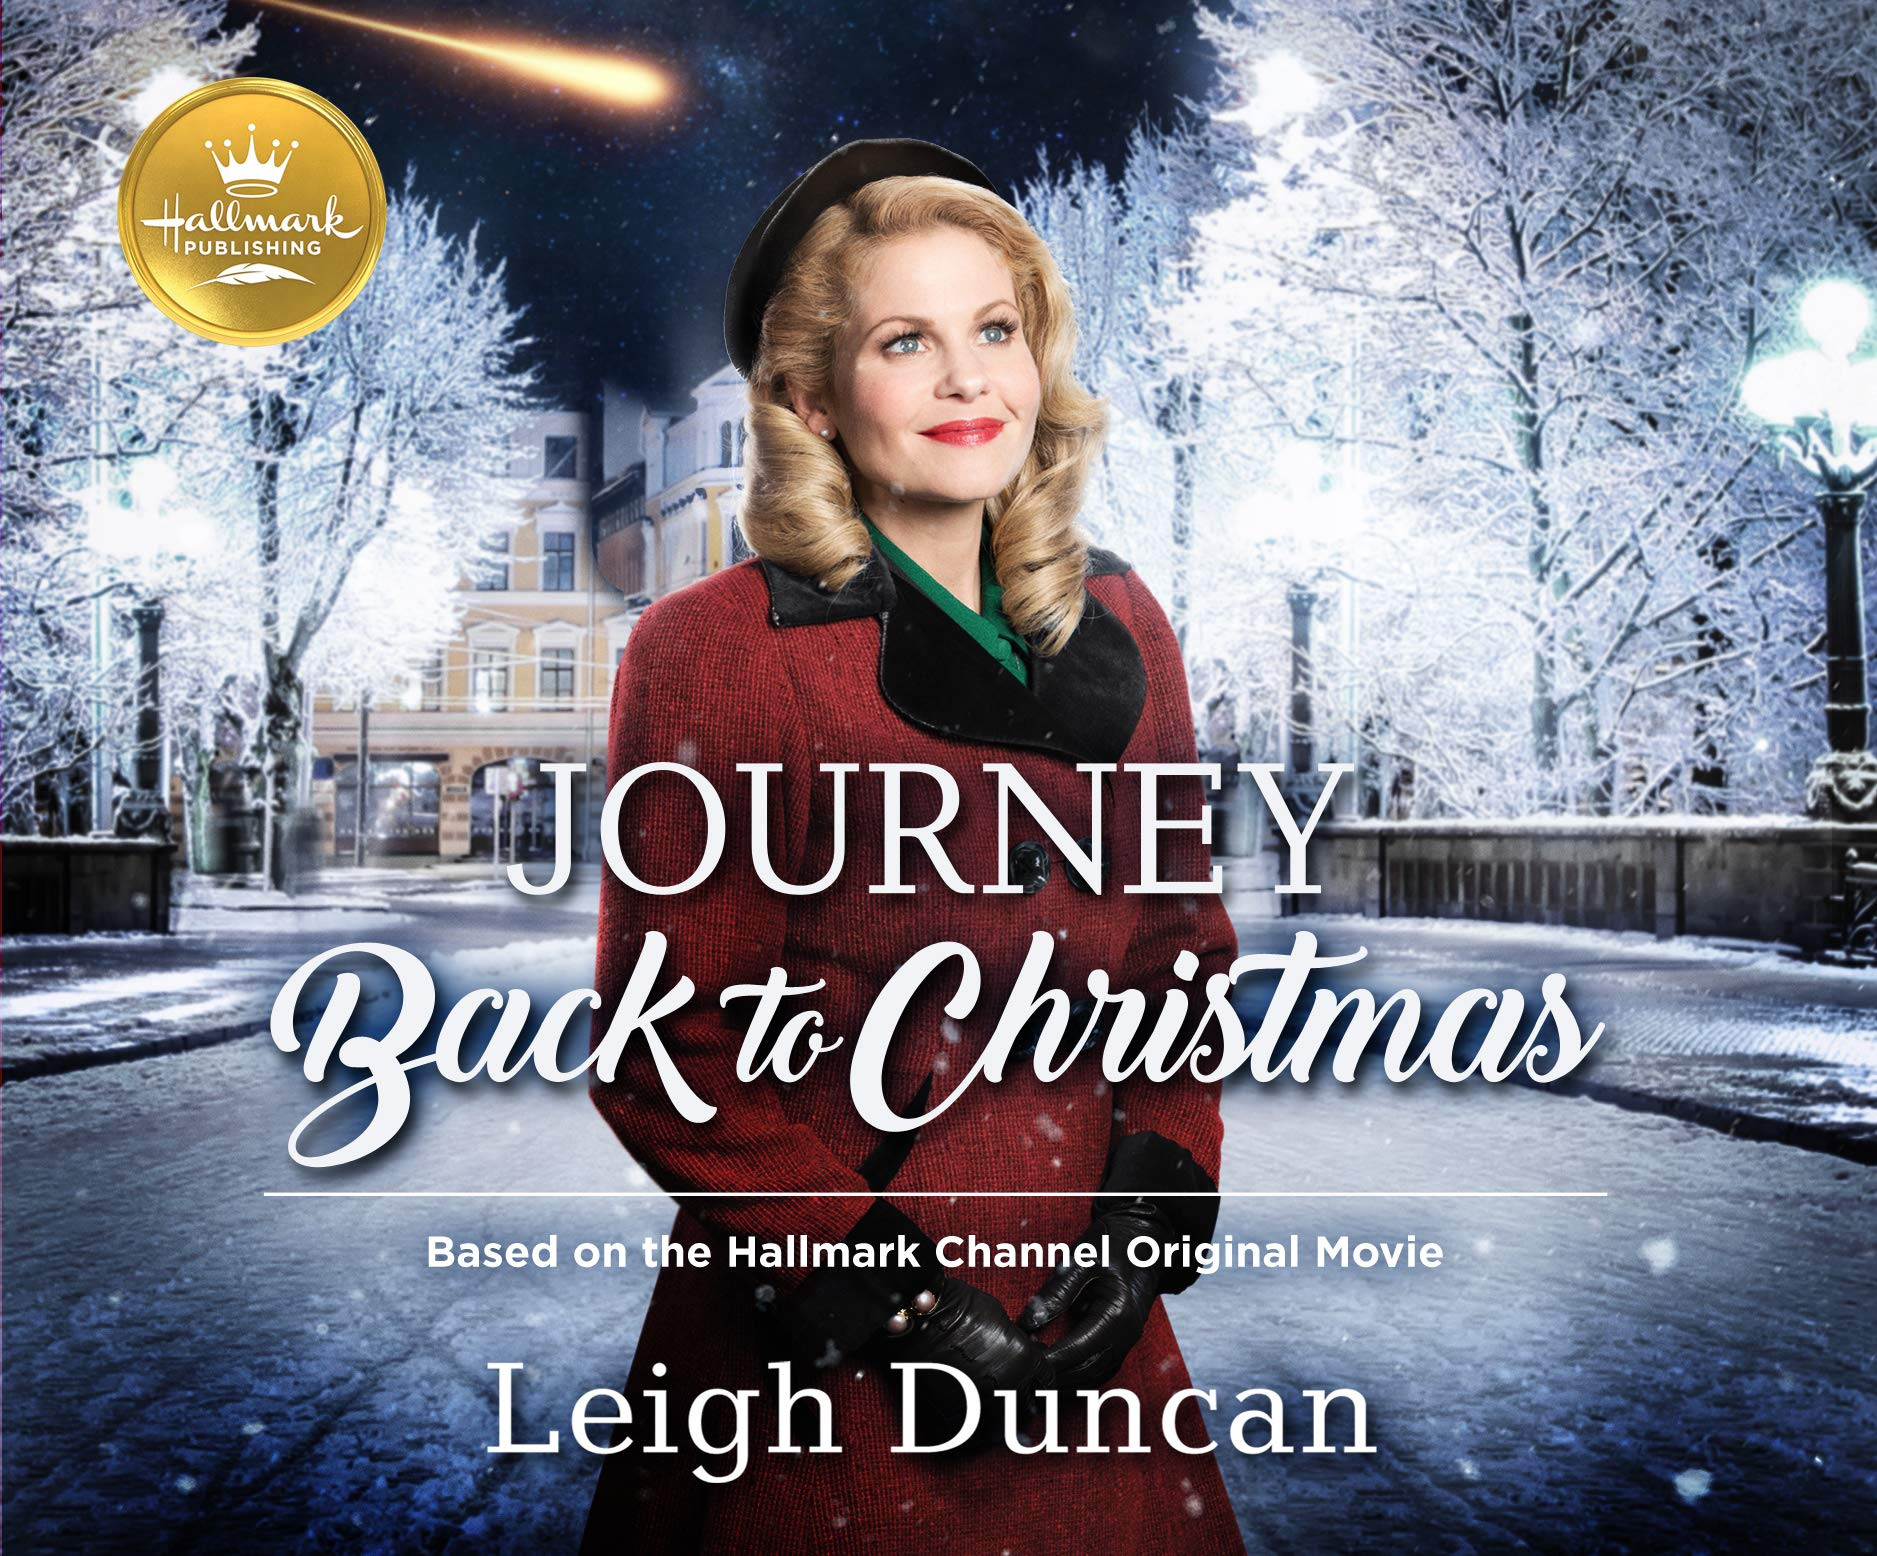 Journey Back To Christmas.Amazon Com Journey Back To Christmas Based On The Hallmark